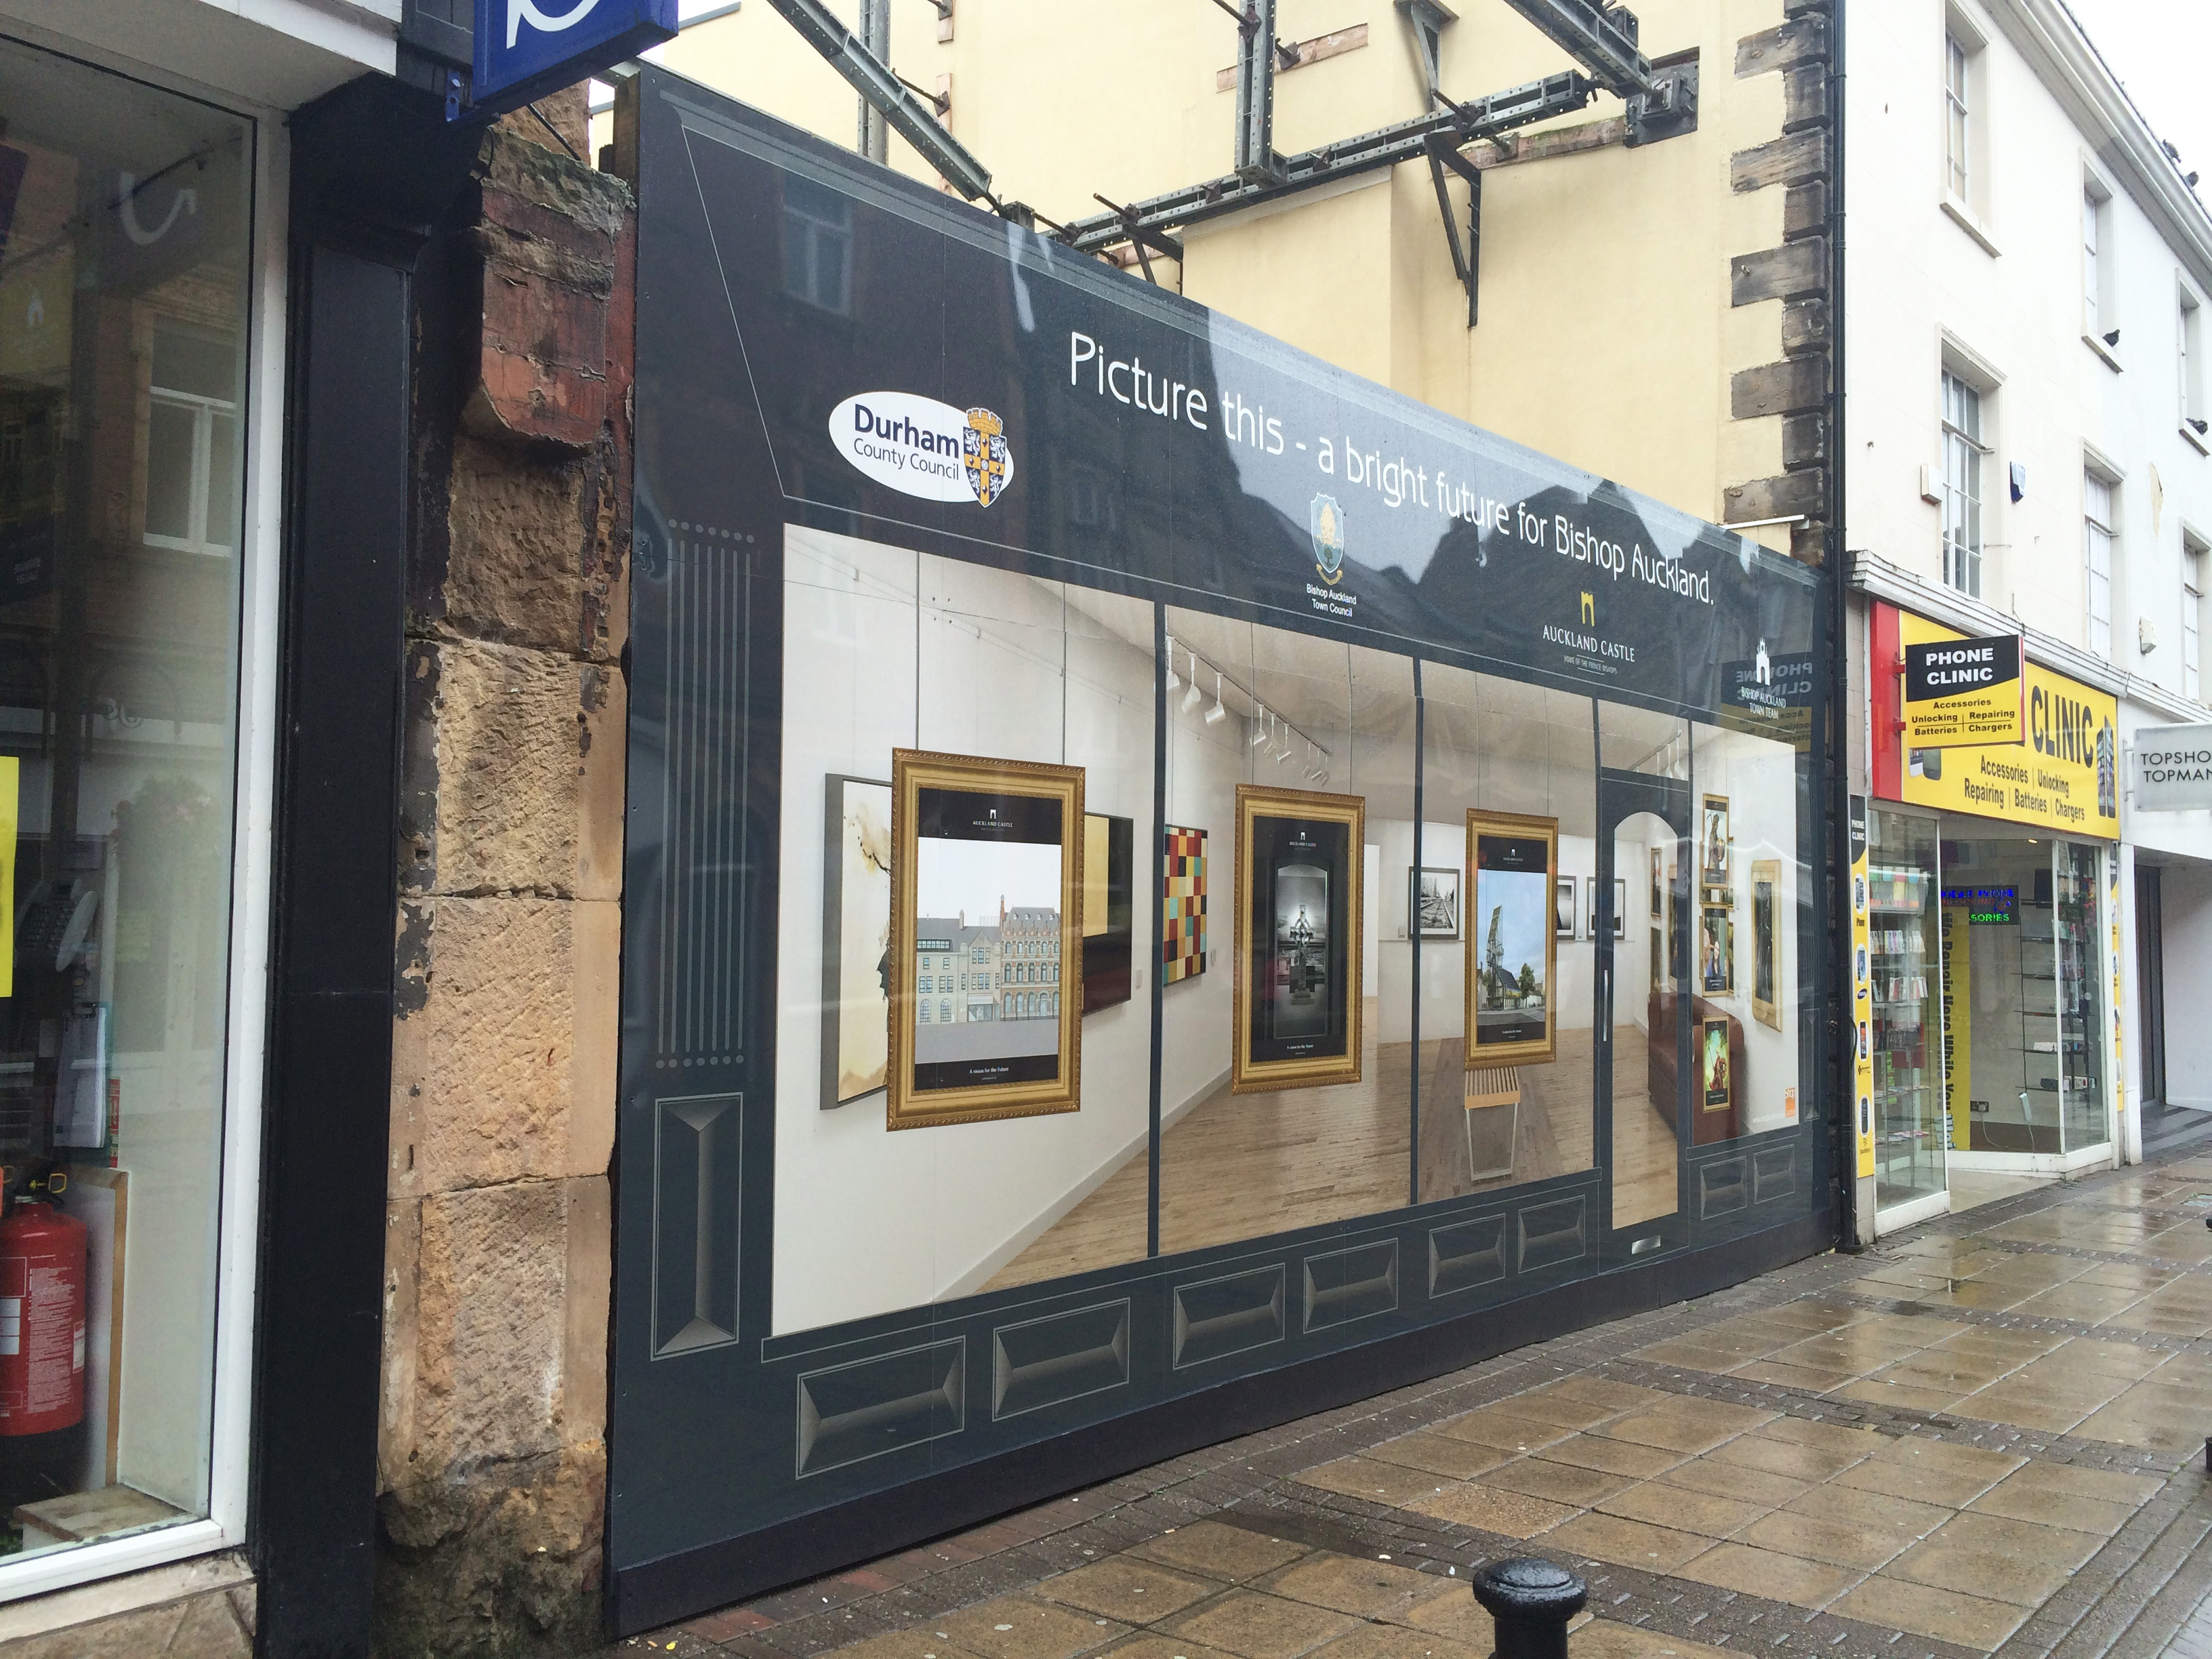 Shop Wraps Show Possibilities For Bishop Auckland